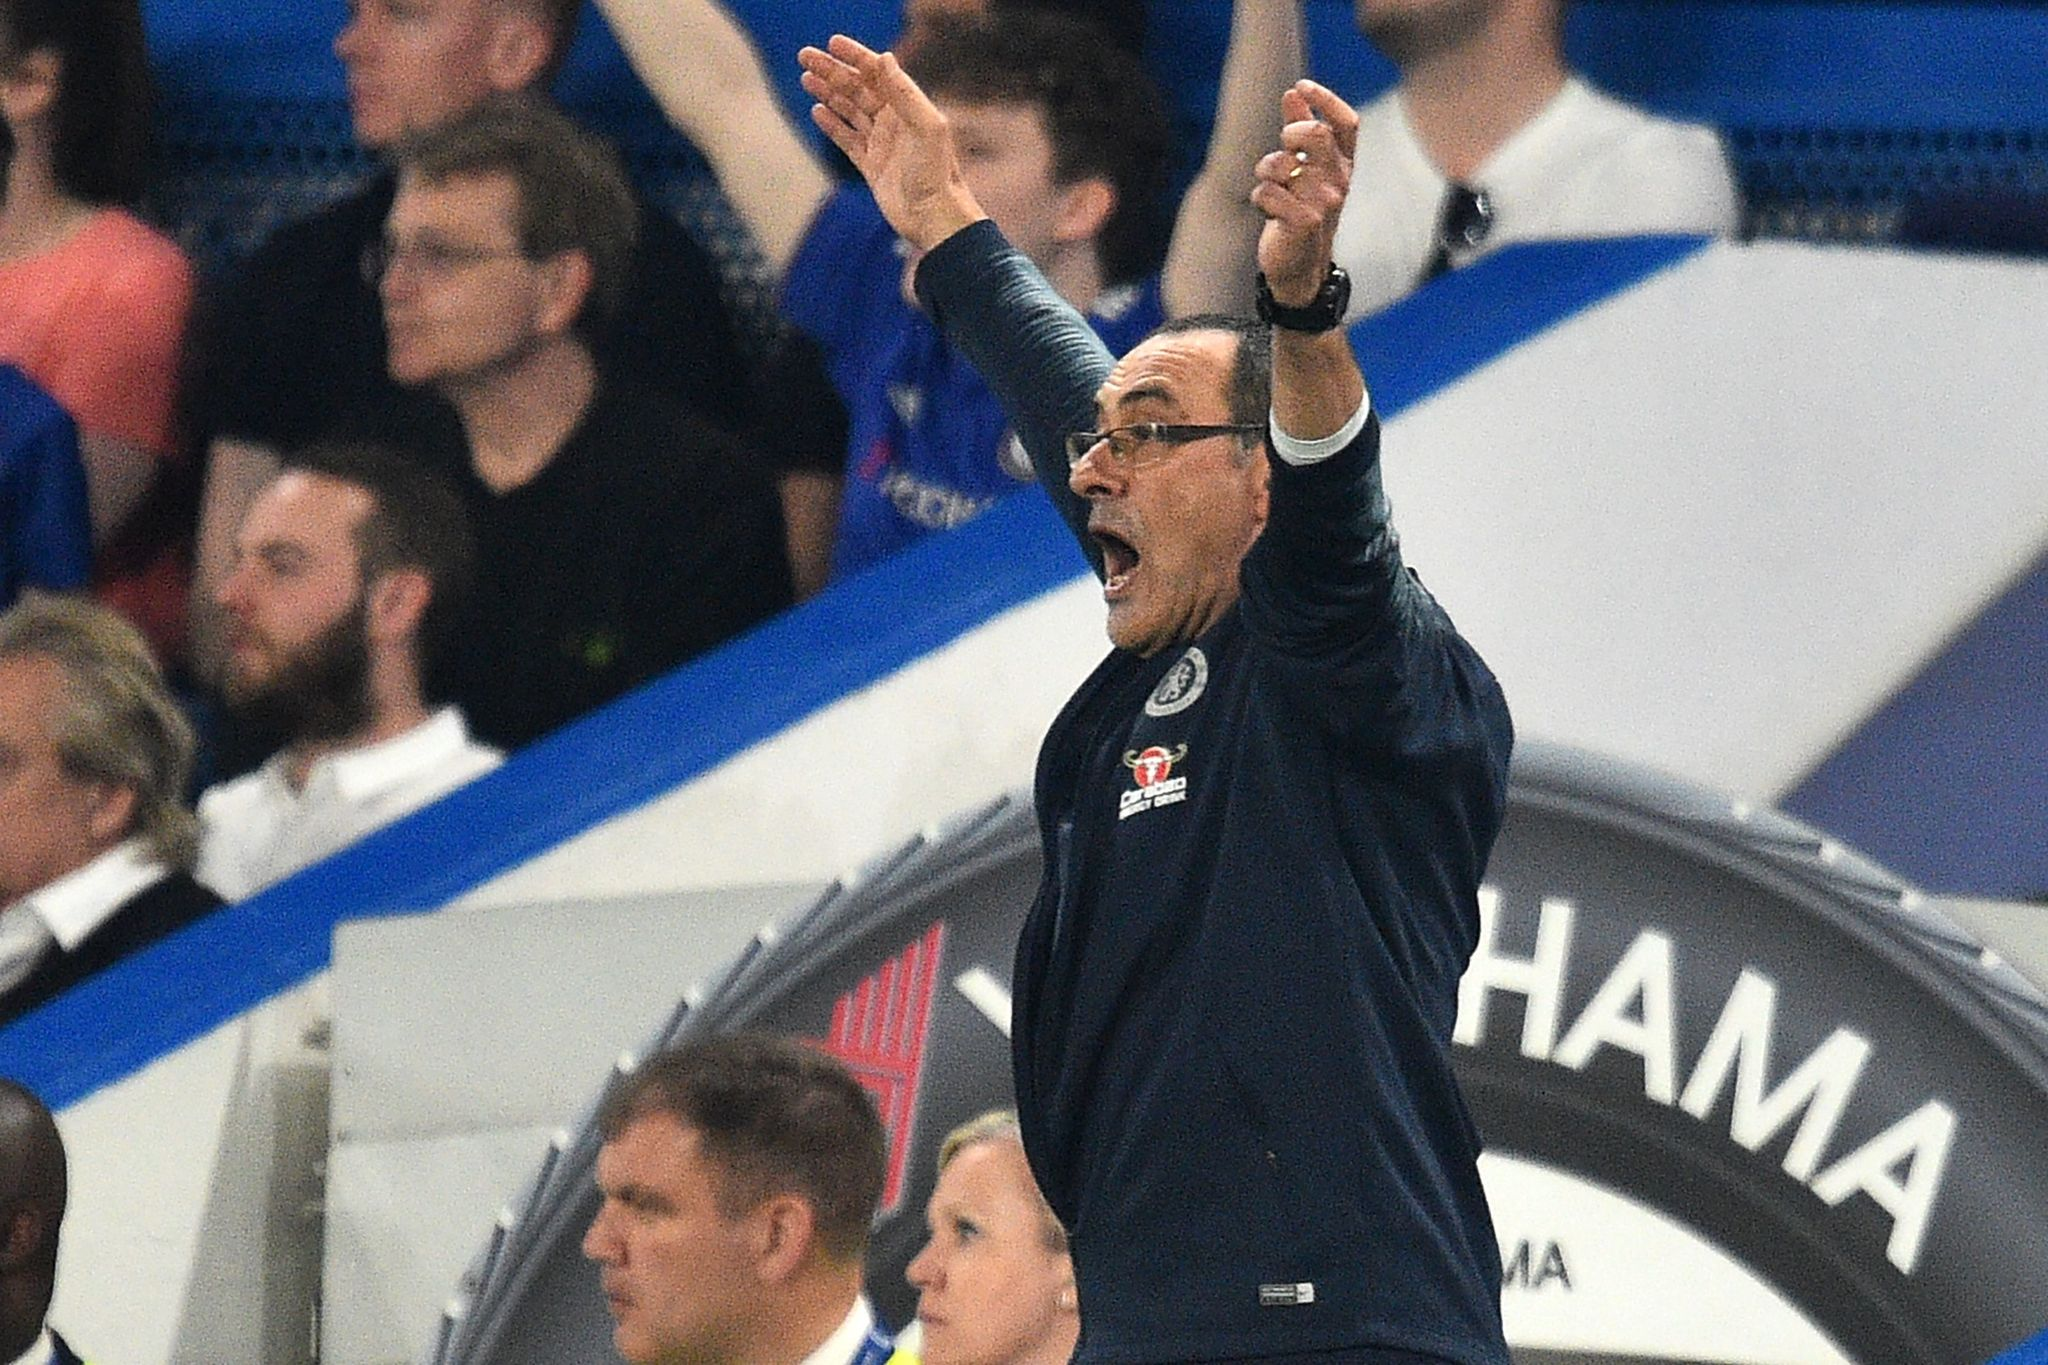 Chelseas Italian head coach Maurizio <HIT>Sarri</HIT> gestures on the touchline during the English Premier League football match between Chelsea and Burnley at Stamford Bridge in London on April 22, 2019. (Photo by Glyn KIRK / AFP) / RESTRICTED TO EDITORIAL USE. No use with unauthorized audio, video, data, fixture lists, club/league logos or live services. Online in-match use limited to 120 images. An additional 40 images may be used in extra time. No video emulation. Social media in-match use limited to 120 images. An additional 40 images may be used in extra time. No use in betting publications, games or single club/league/player publications. /